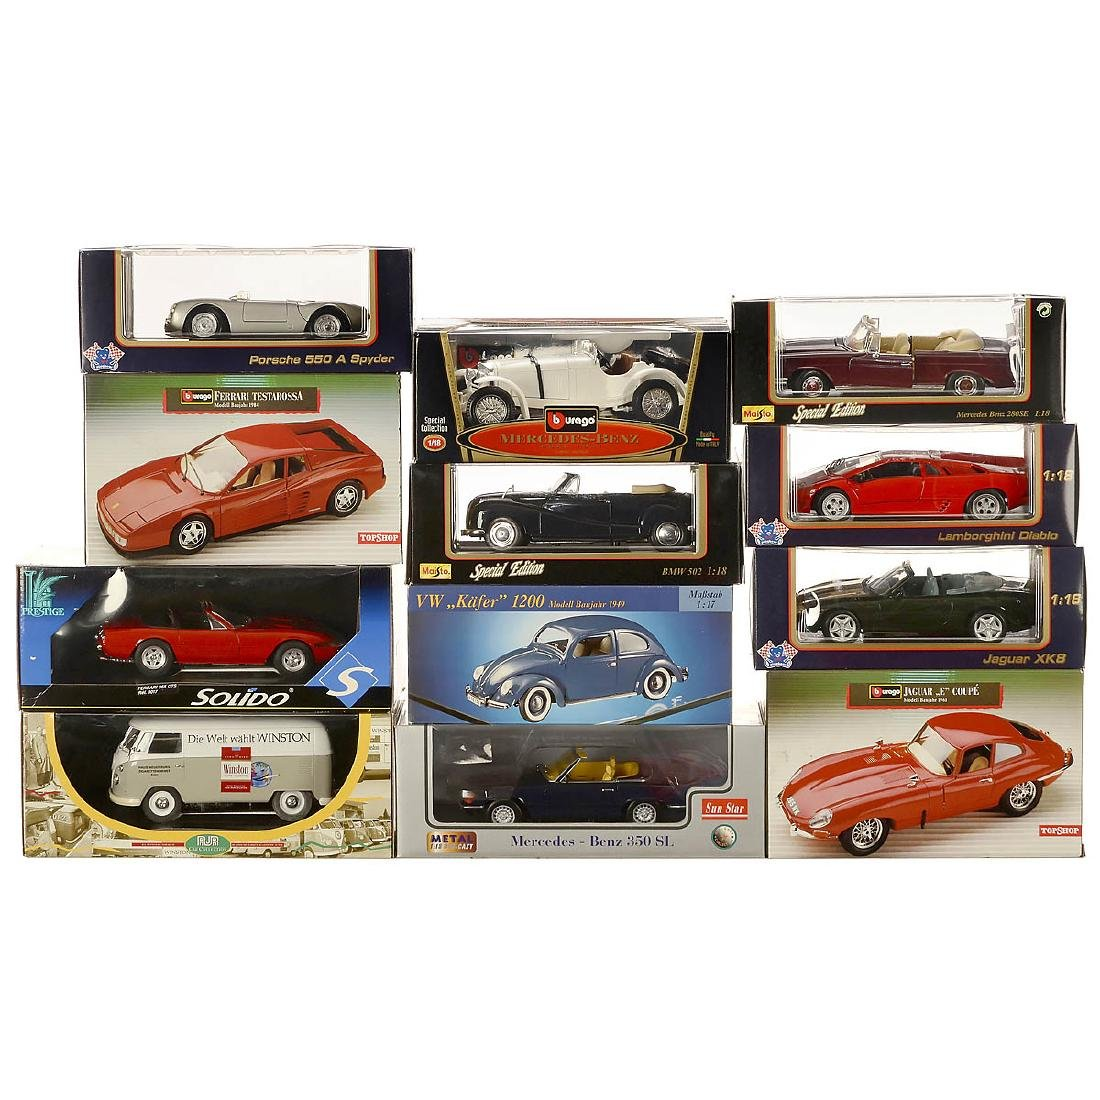 Group of Scale1:18 Model Cars - 2